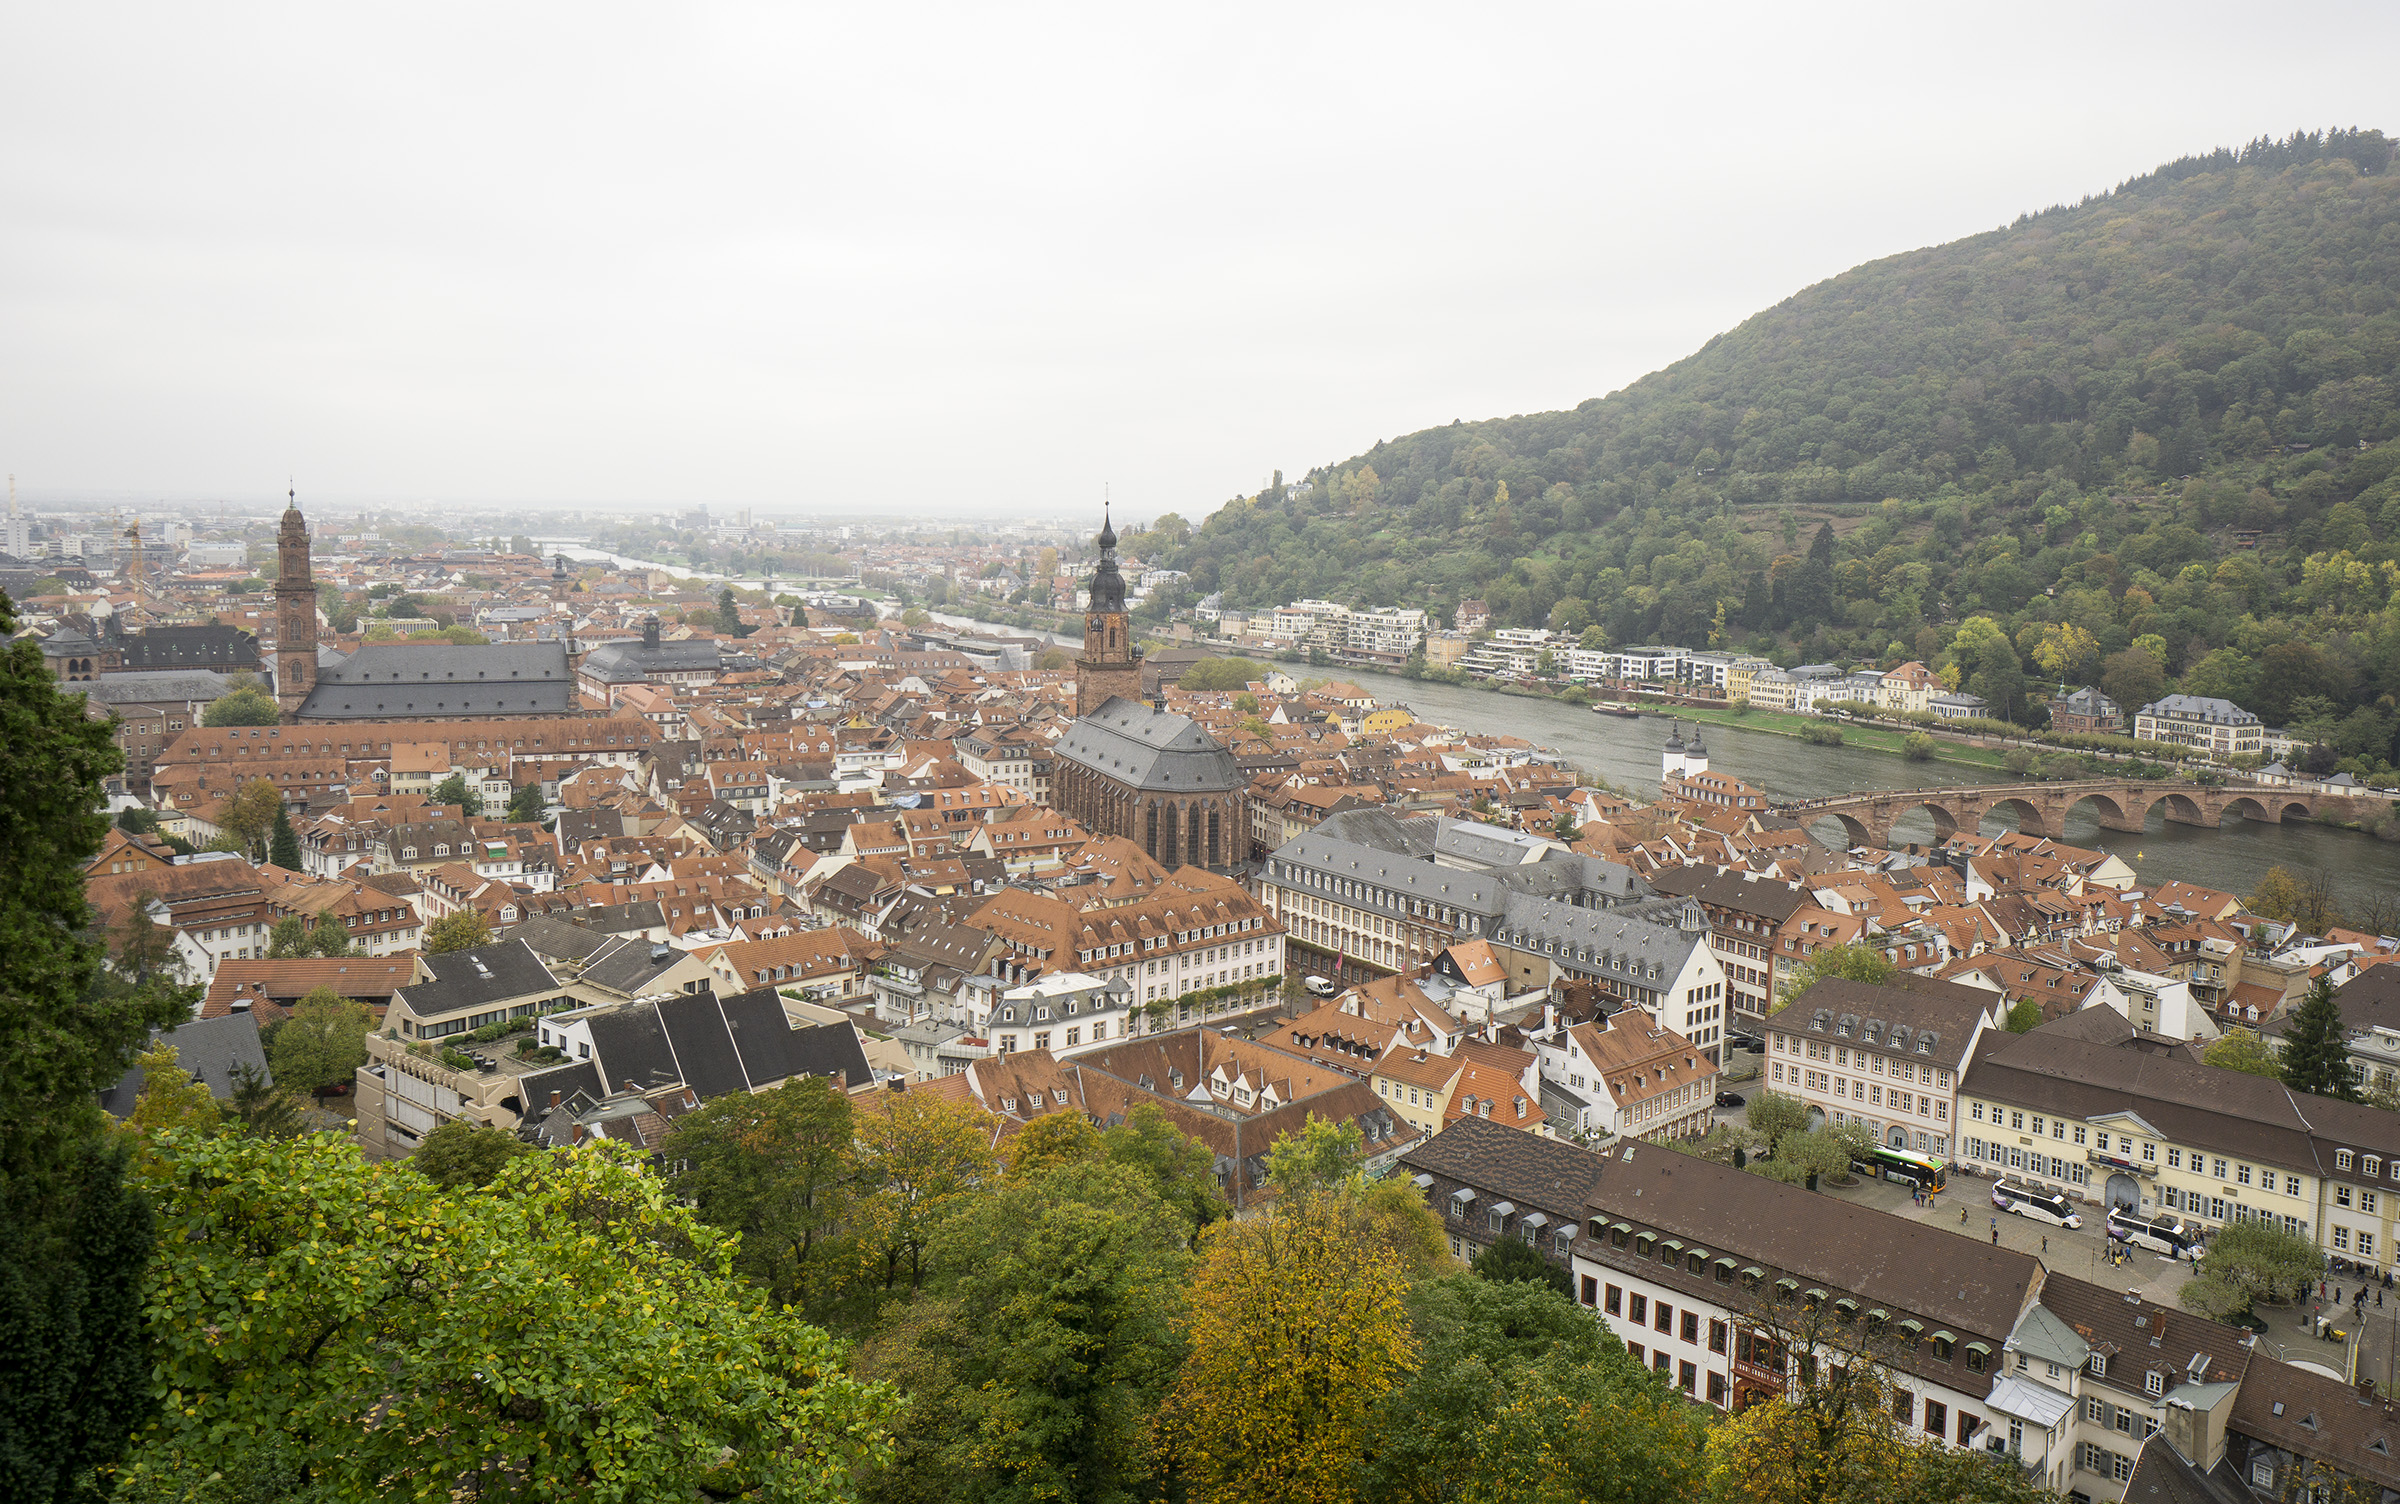 View over the town from Heidelberg Castle